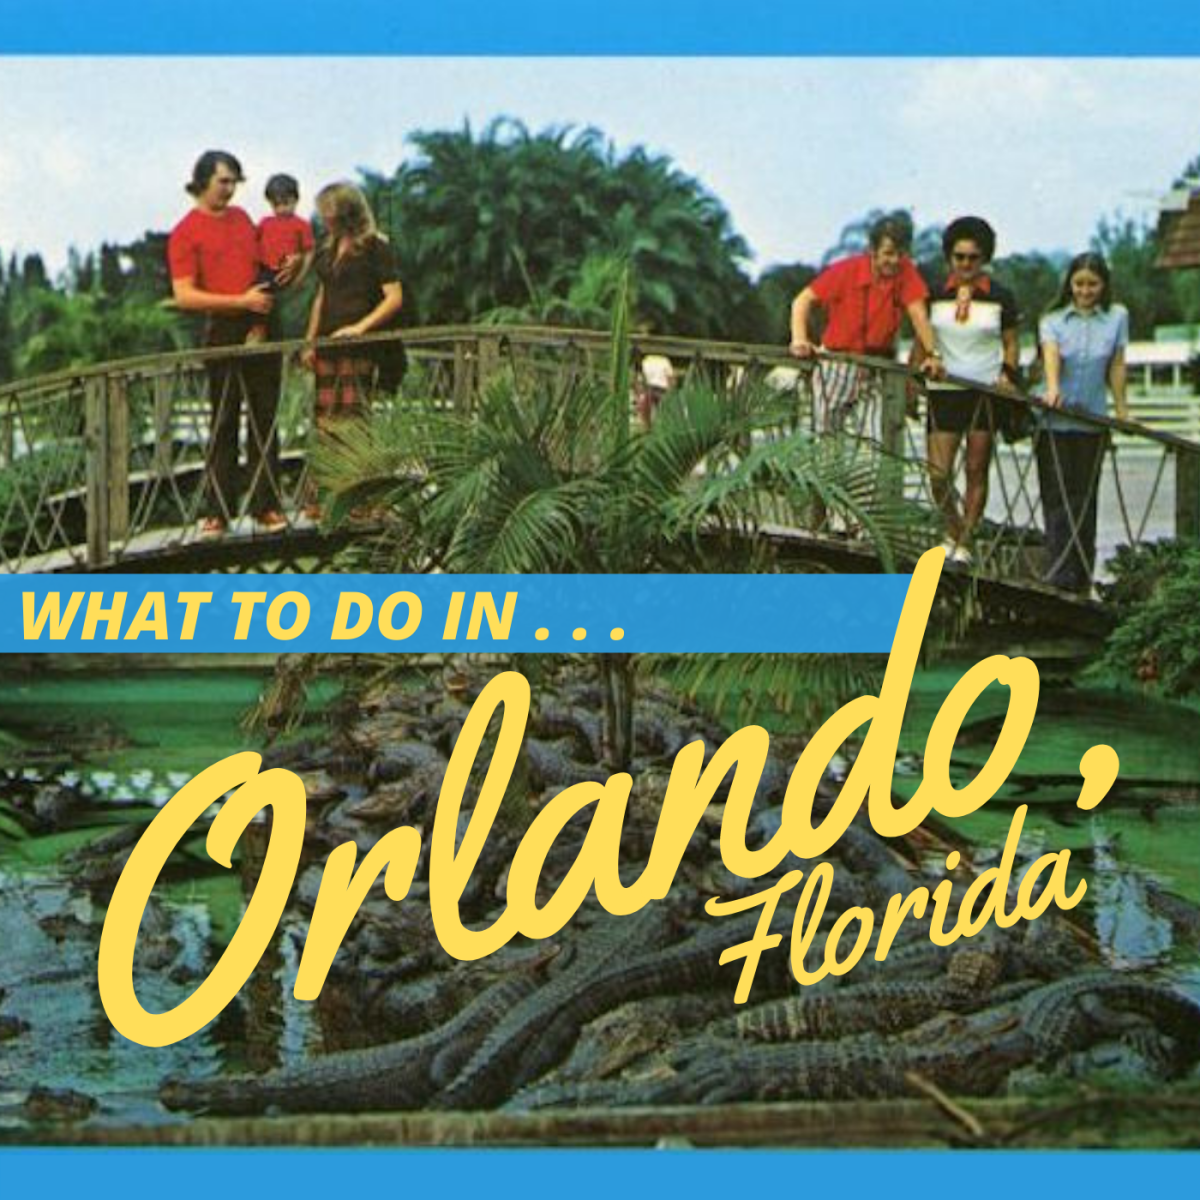 With more to see and do than almost anywhere else in the country, Orlando is a a tropical paradise for locals and visitors alike.